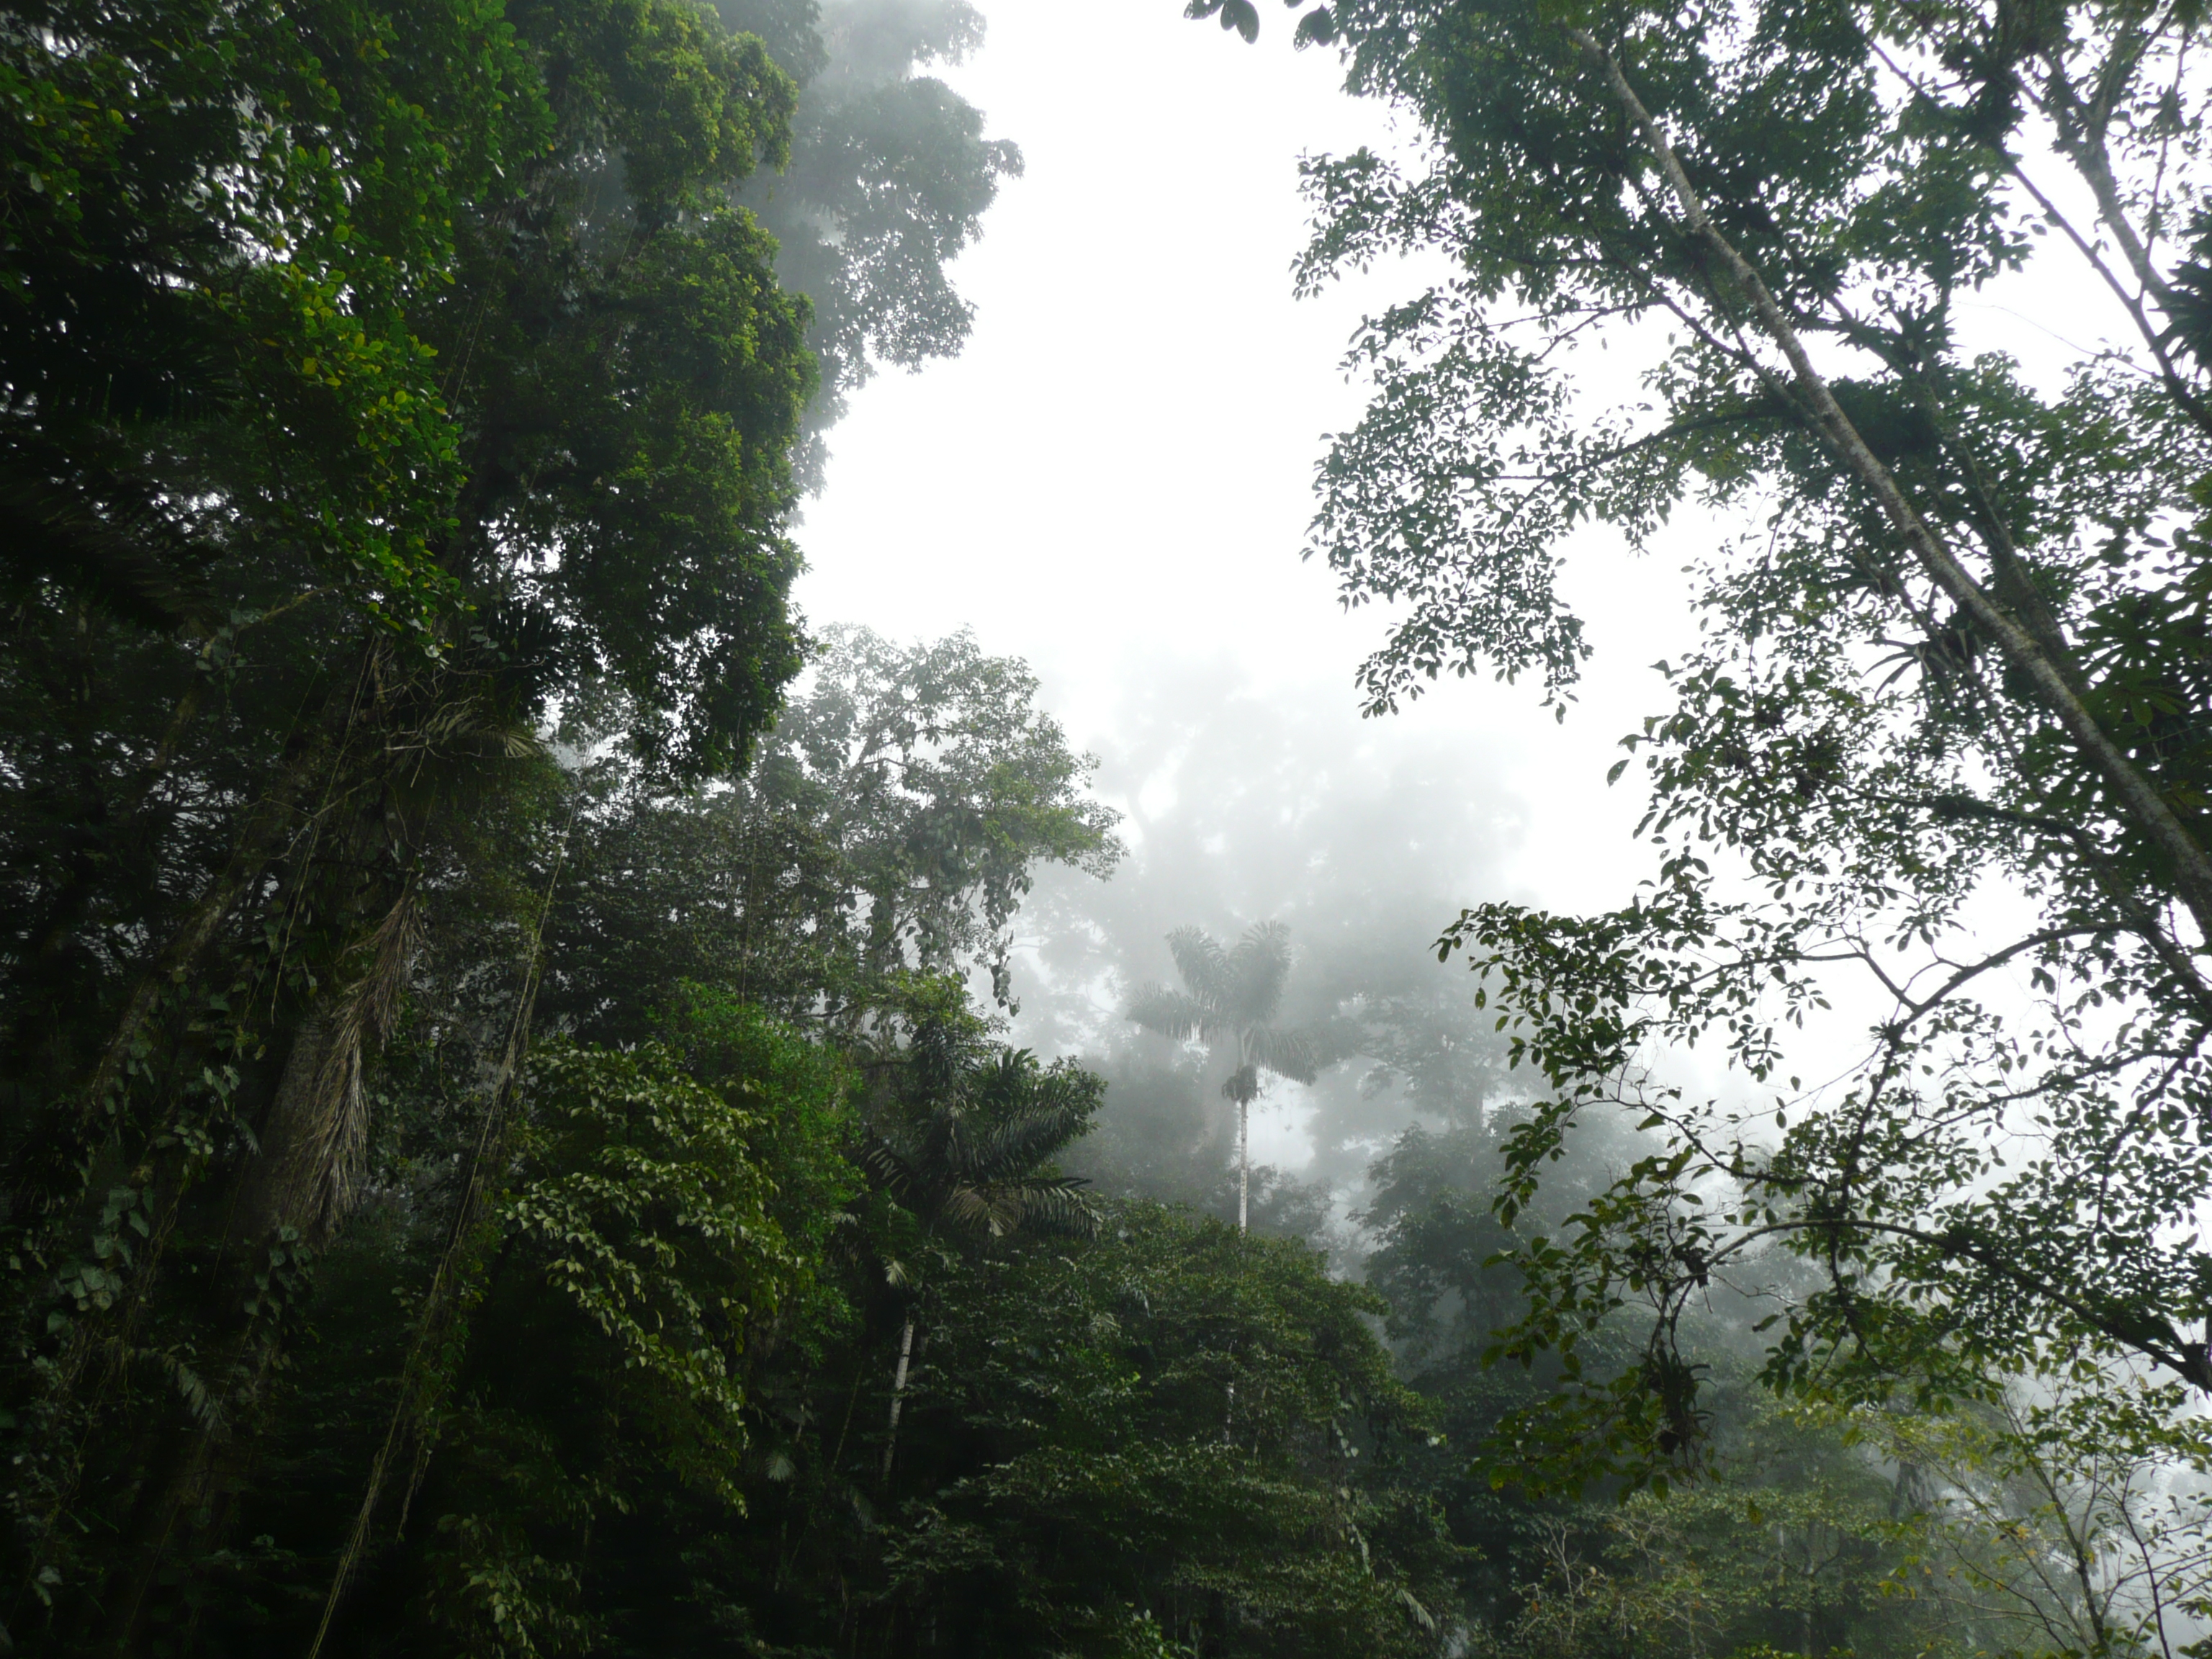 Depiction of Clima tropical